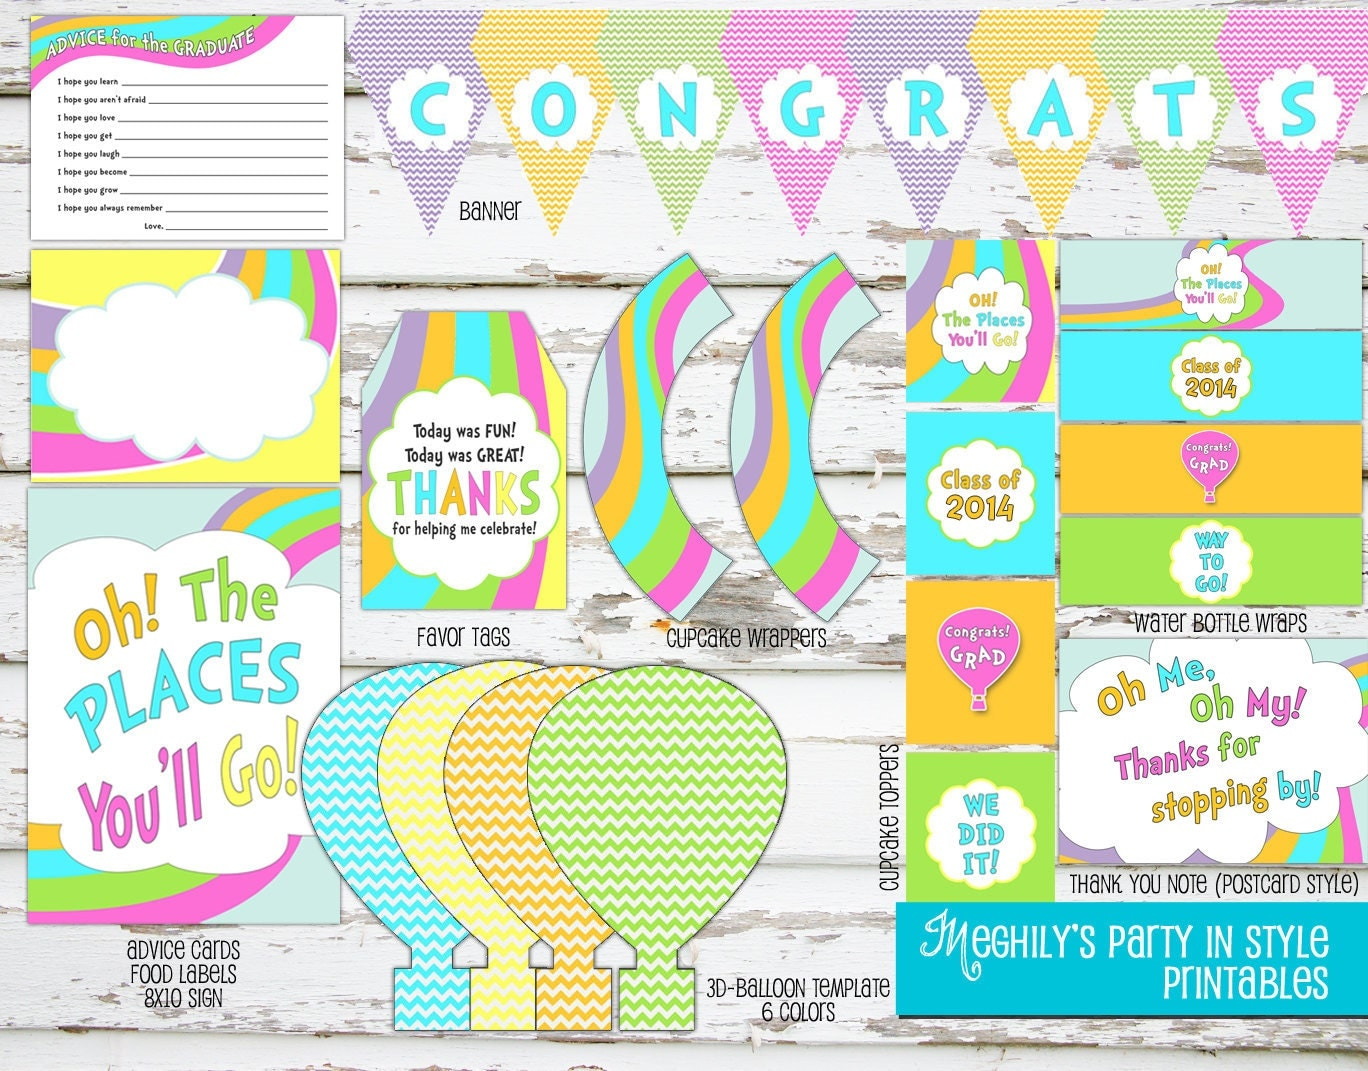 Obsessed image pertaining to oh the places you'll go printable